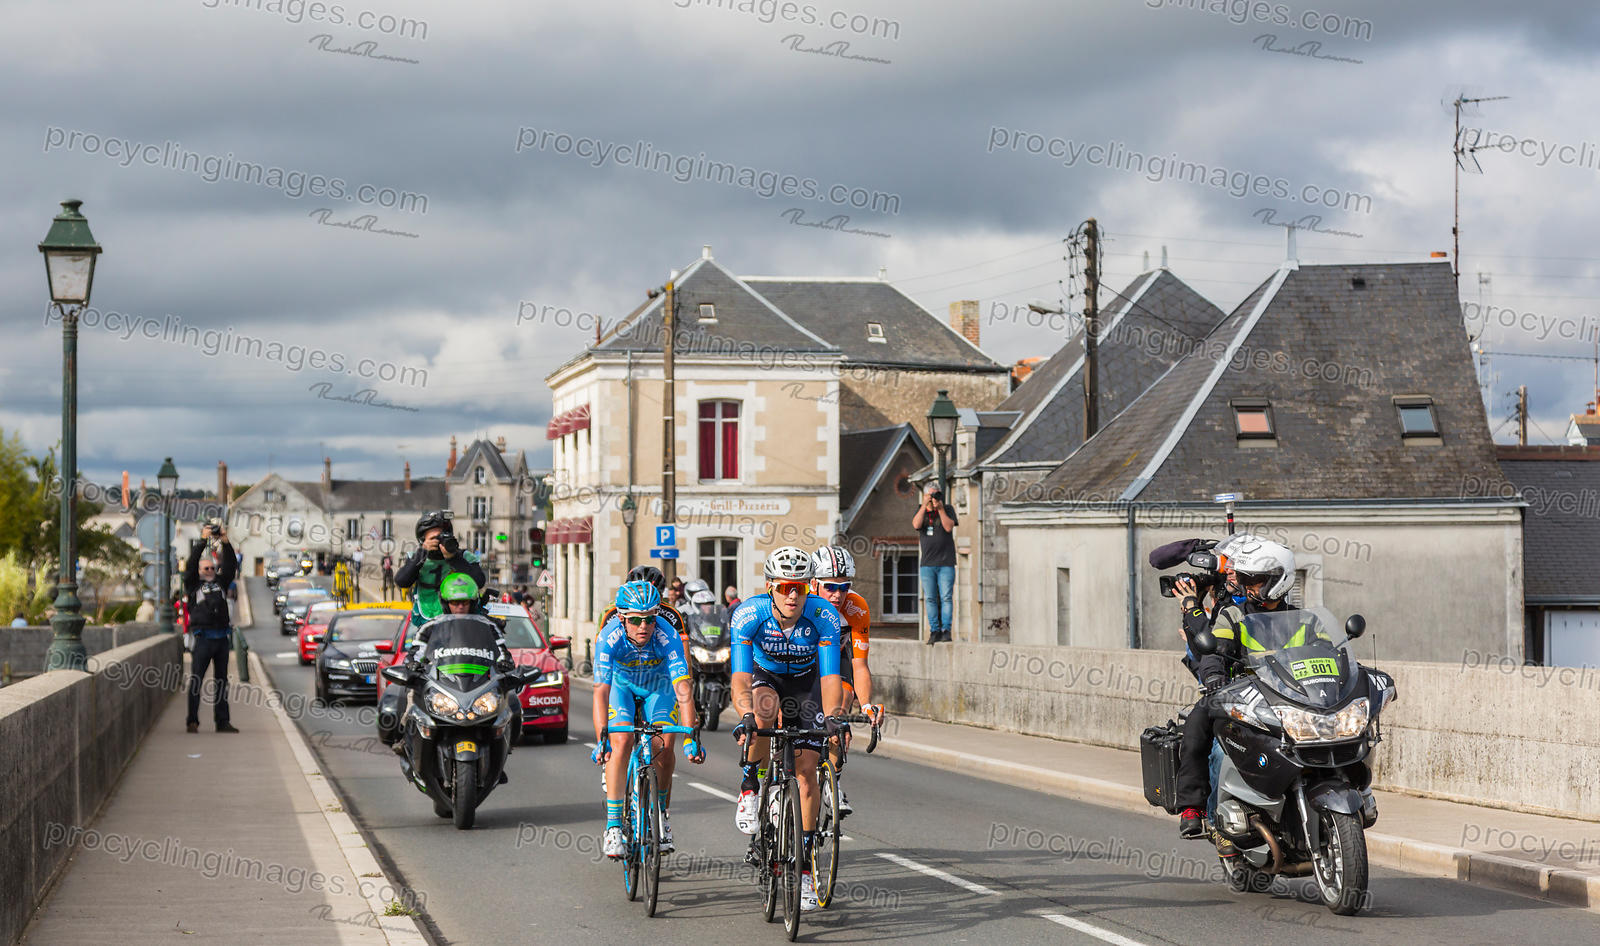 The Breakaway in Amboise - Paris-Tours 2017